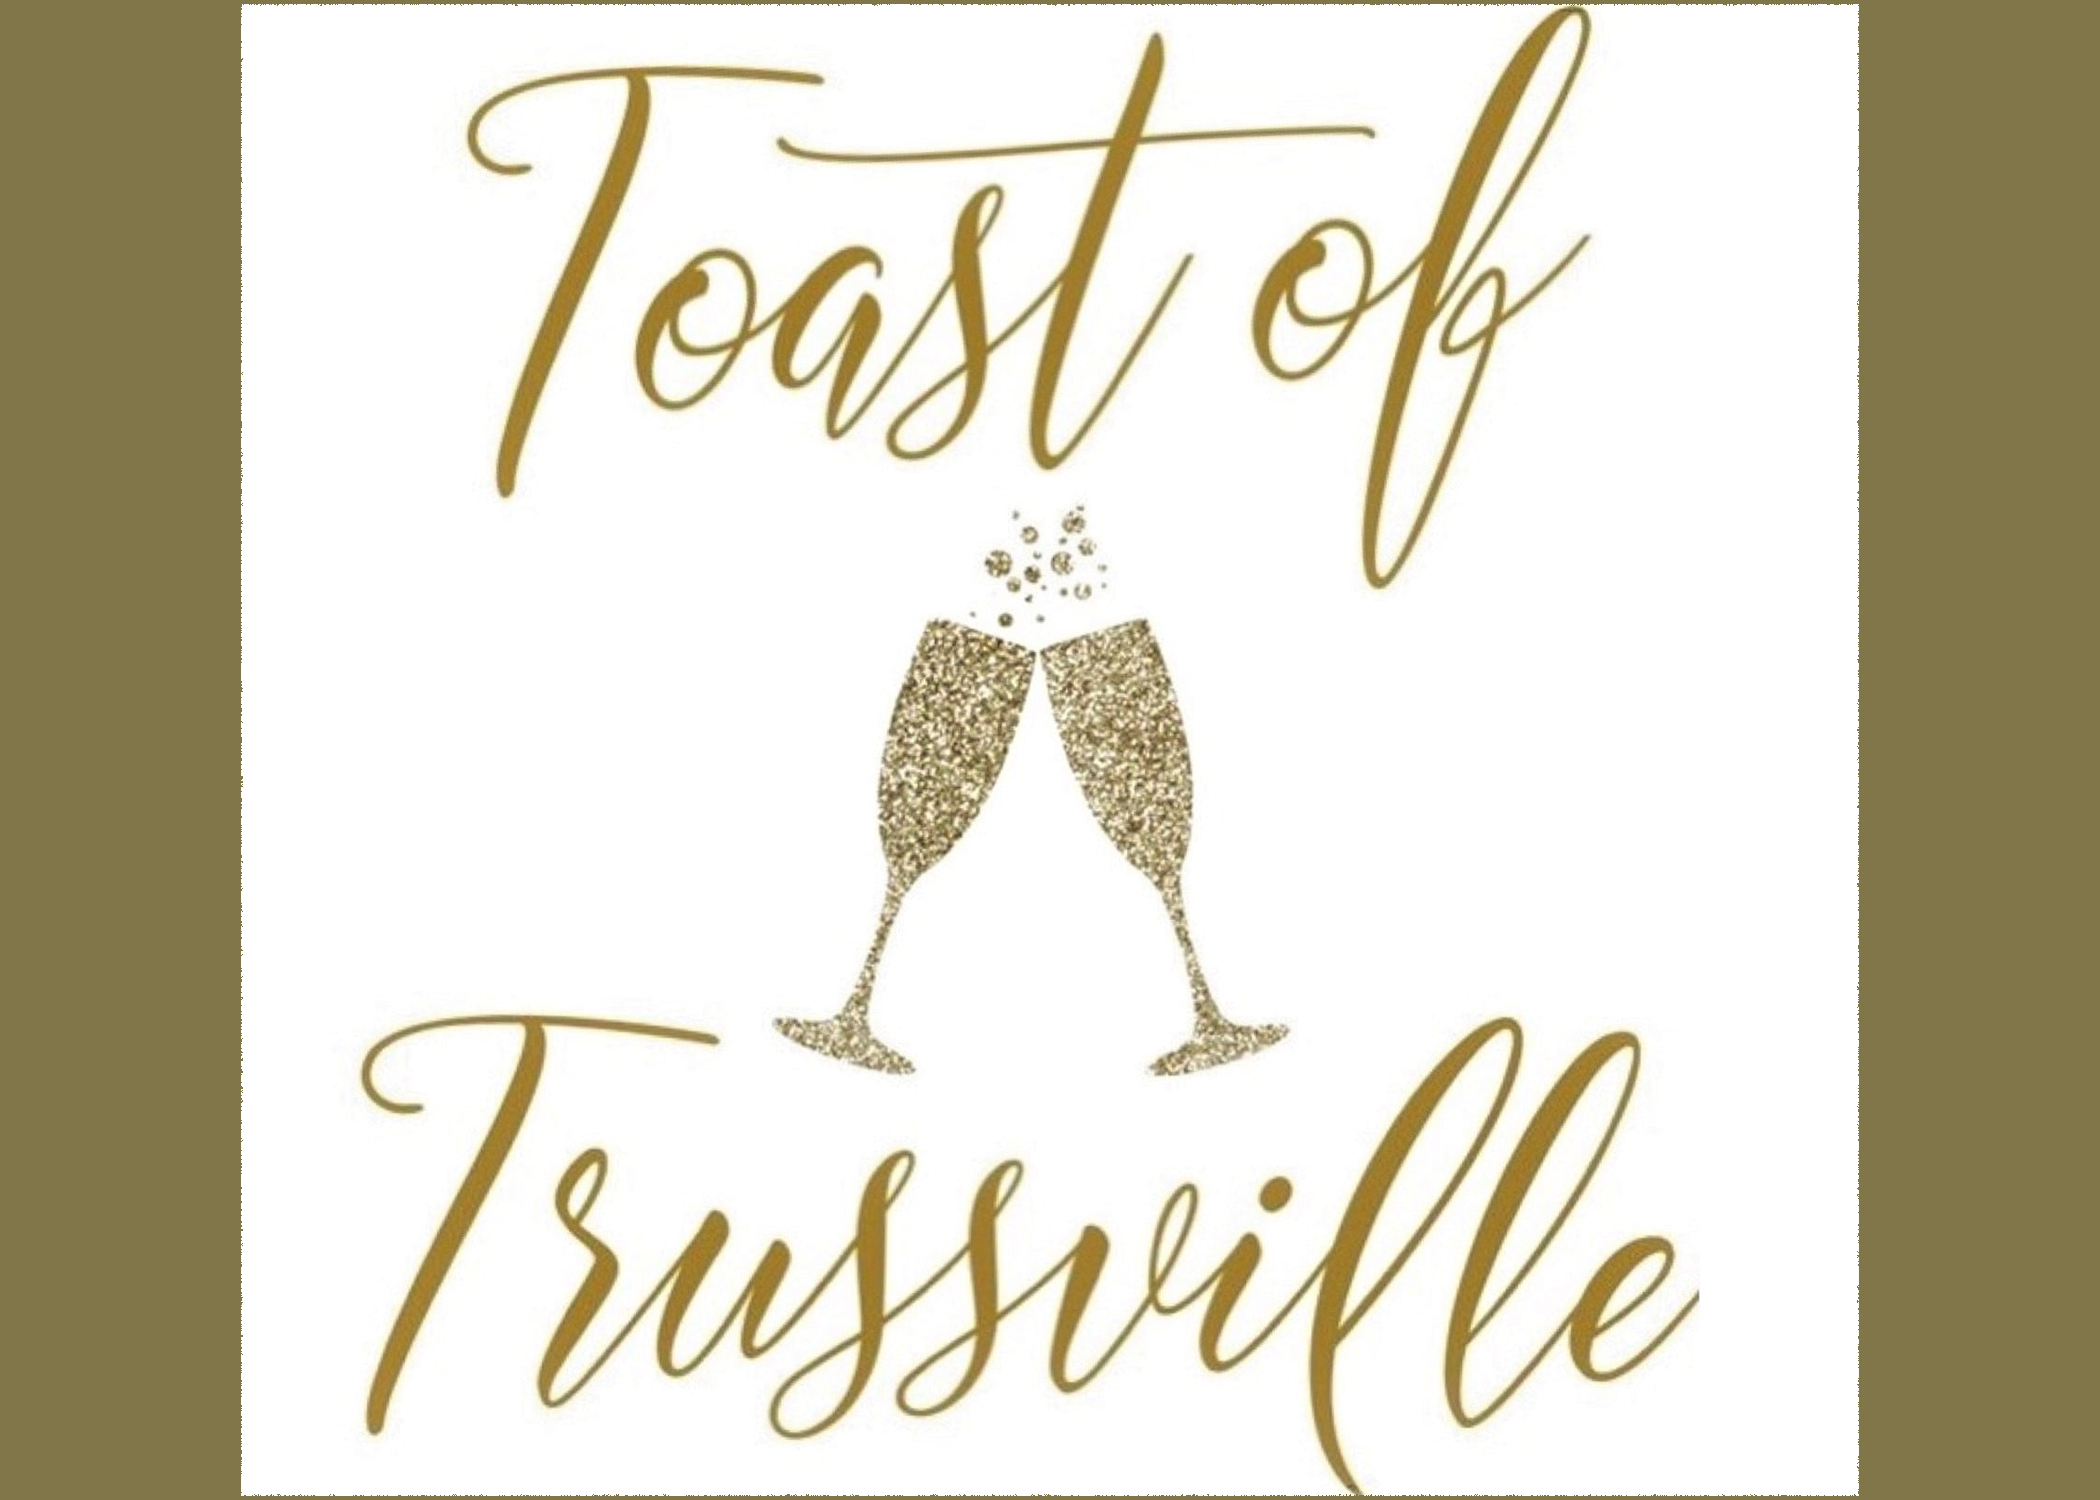 Toast of Trussville postponed to Feb. 18